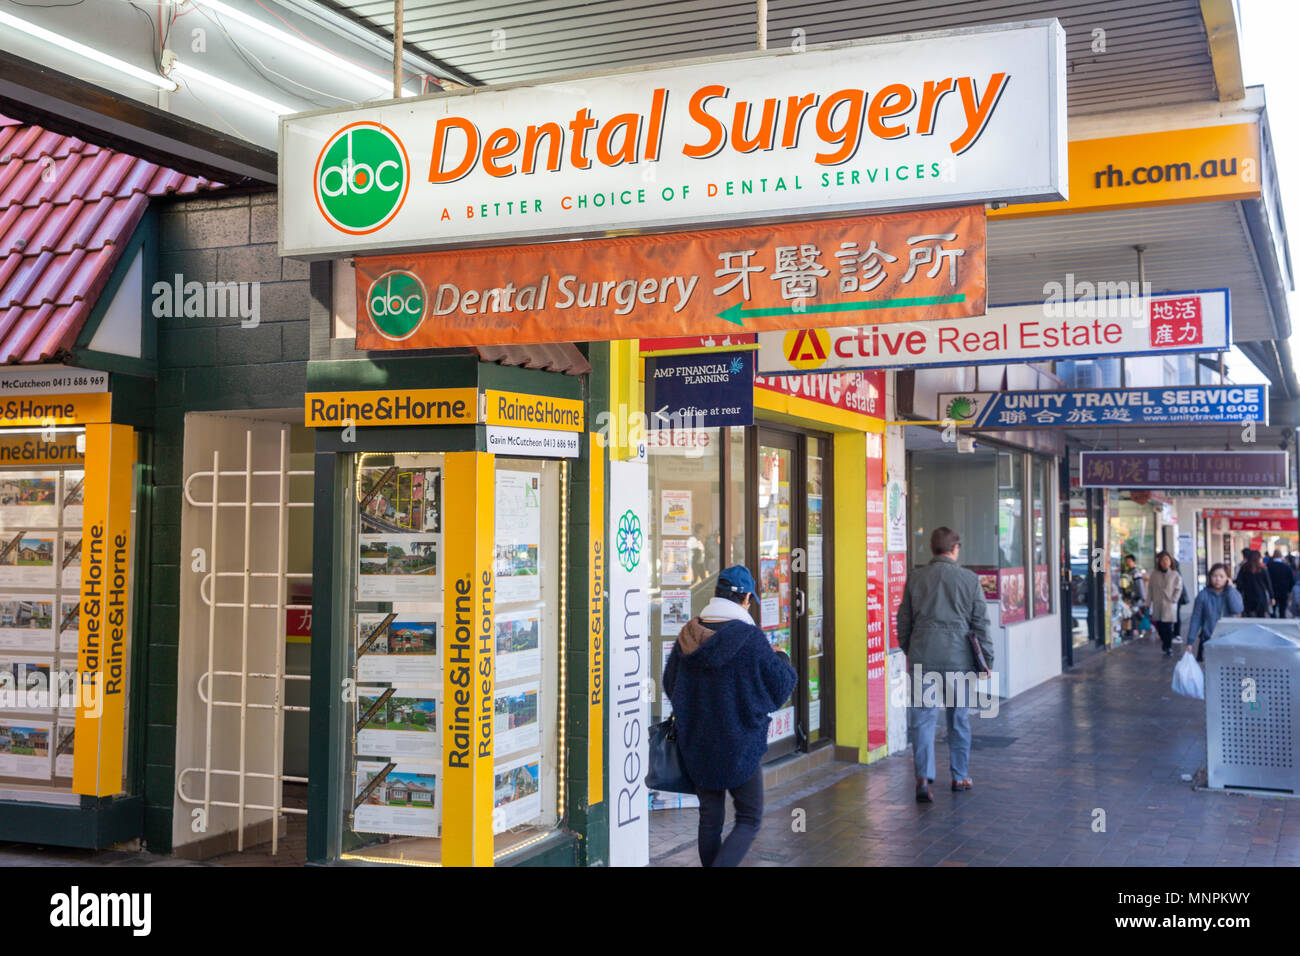 Dental surgery in Eastwood, a suburb of Sydney,Australia - Stock Image